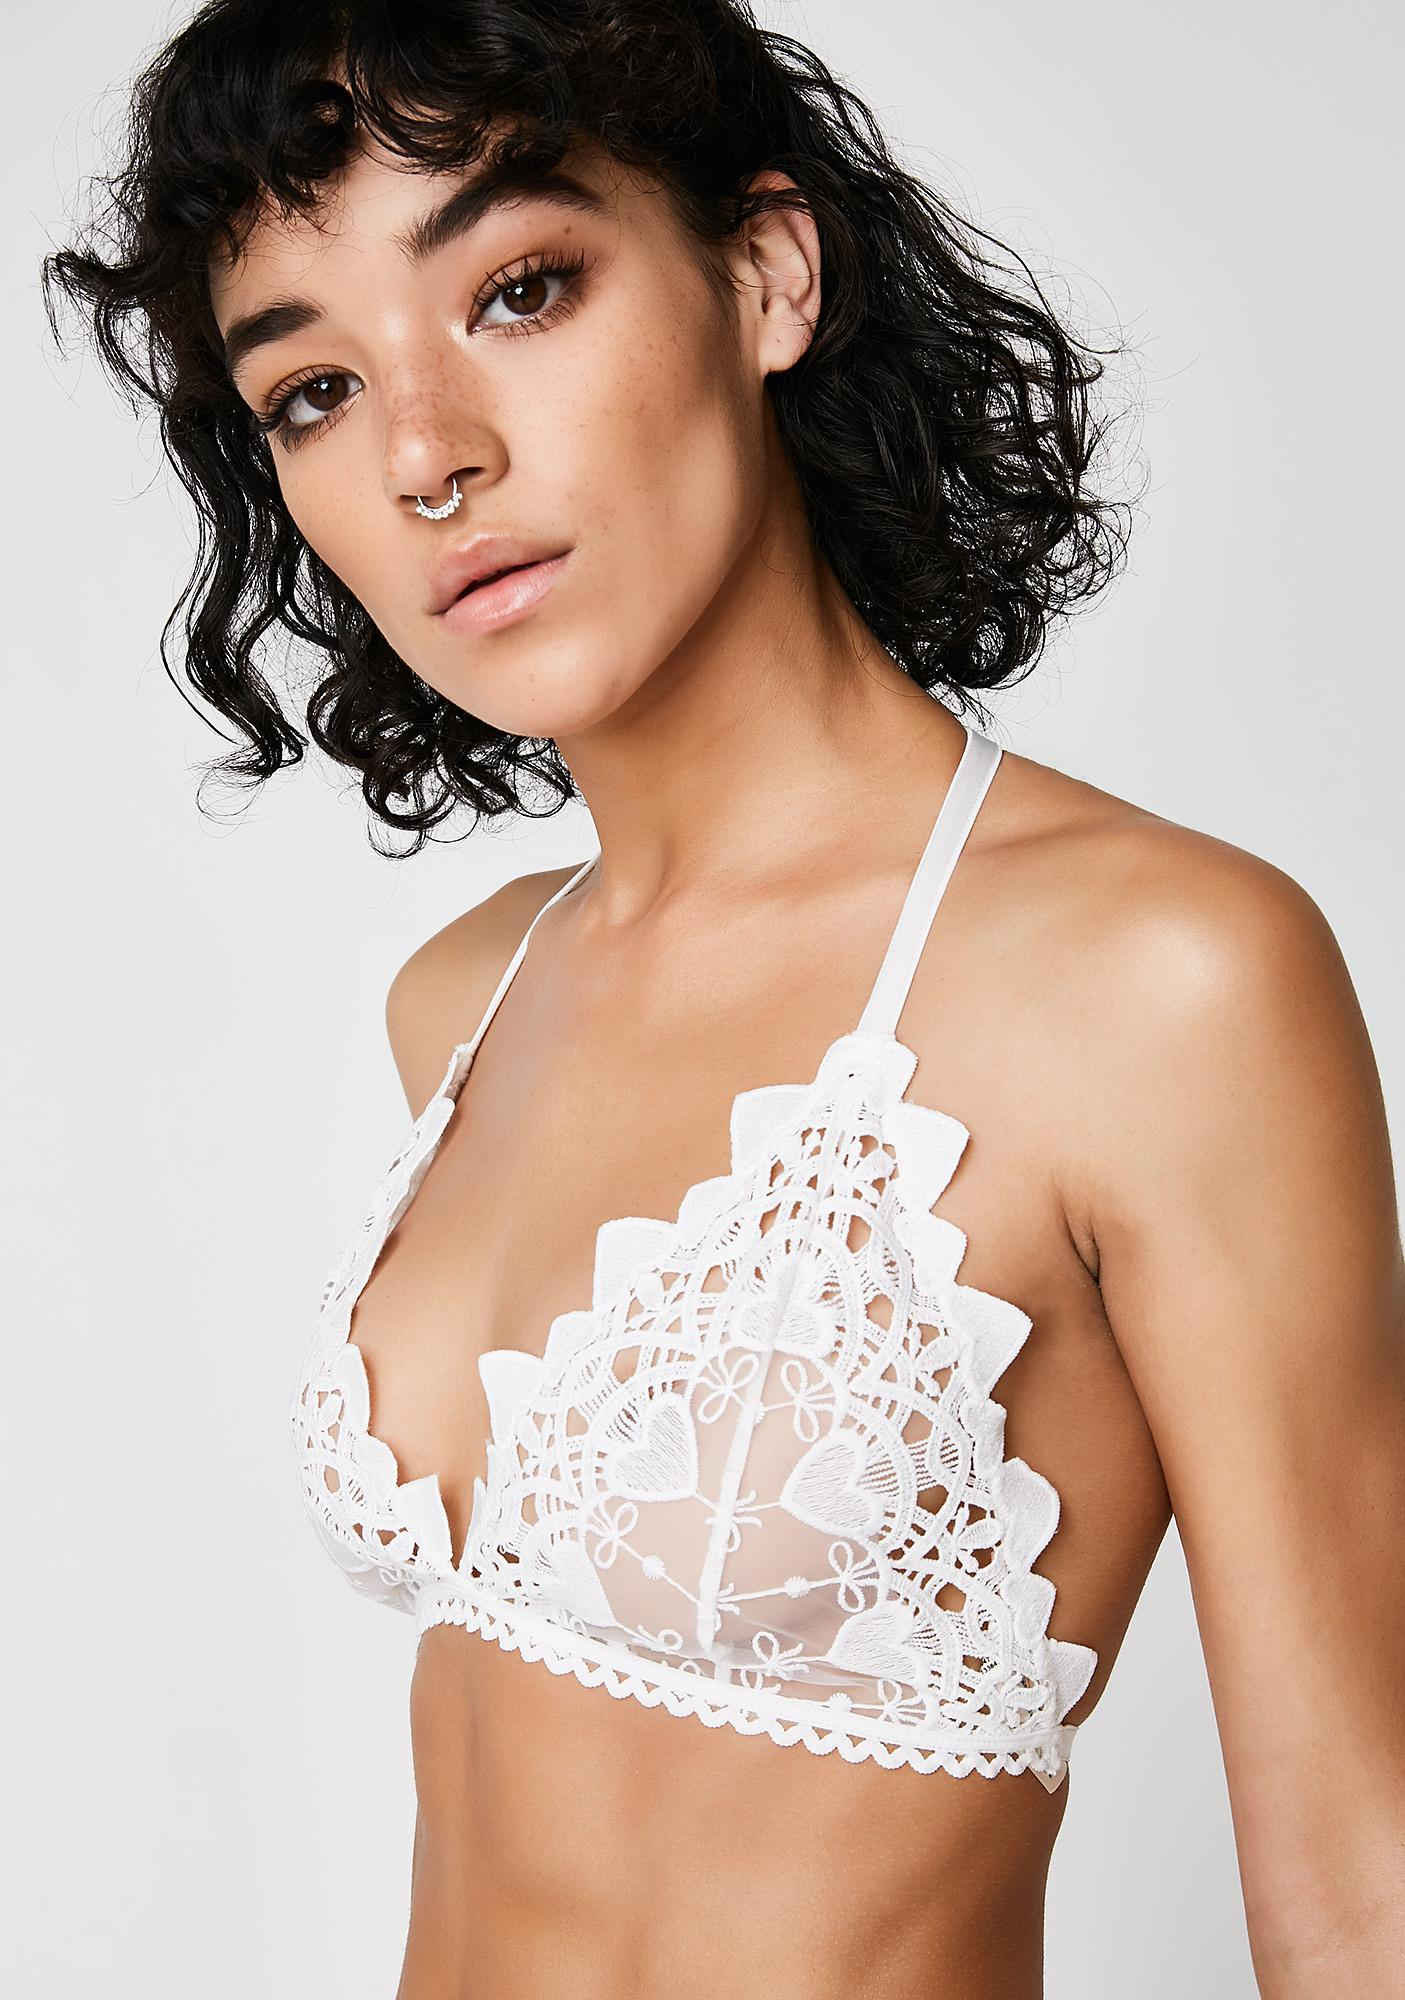 Next to Nothing  Snow Drop Venetian Lace Flowers Bra